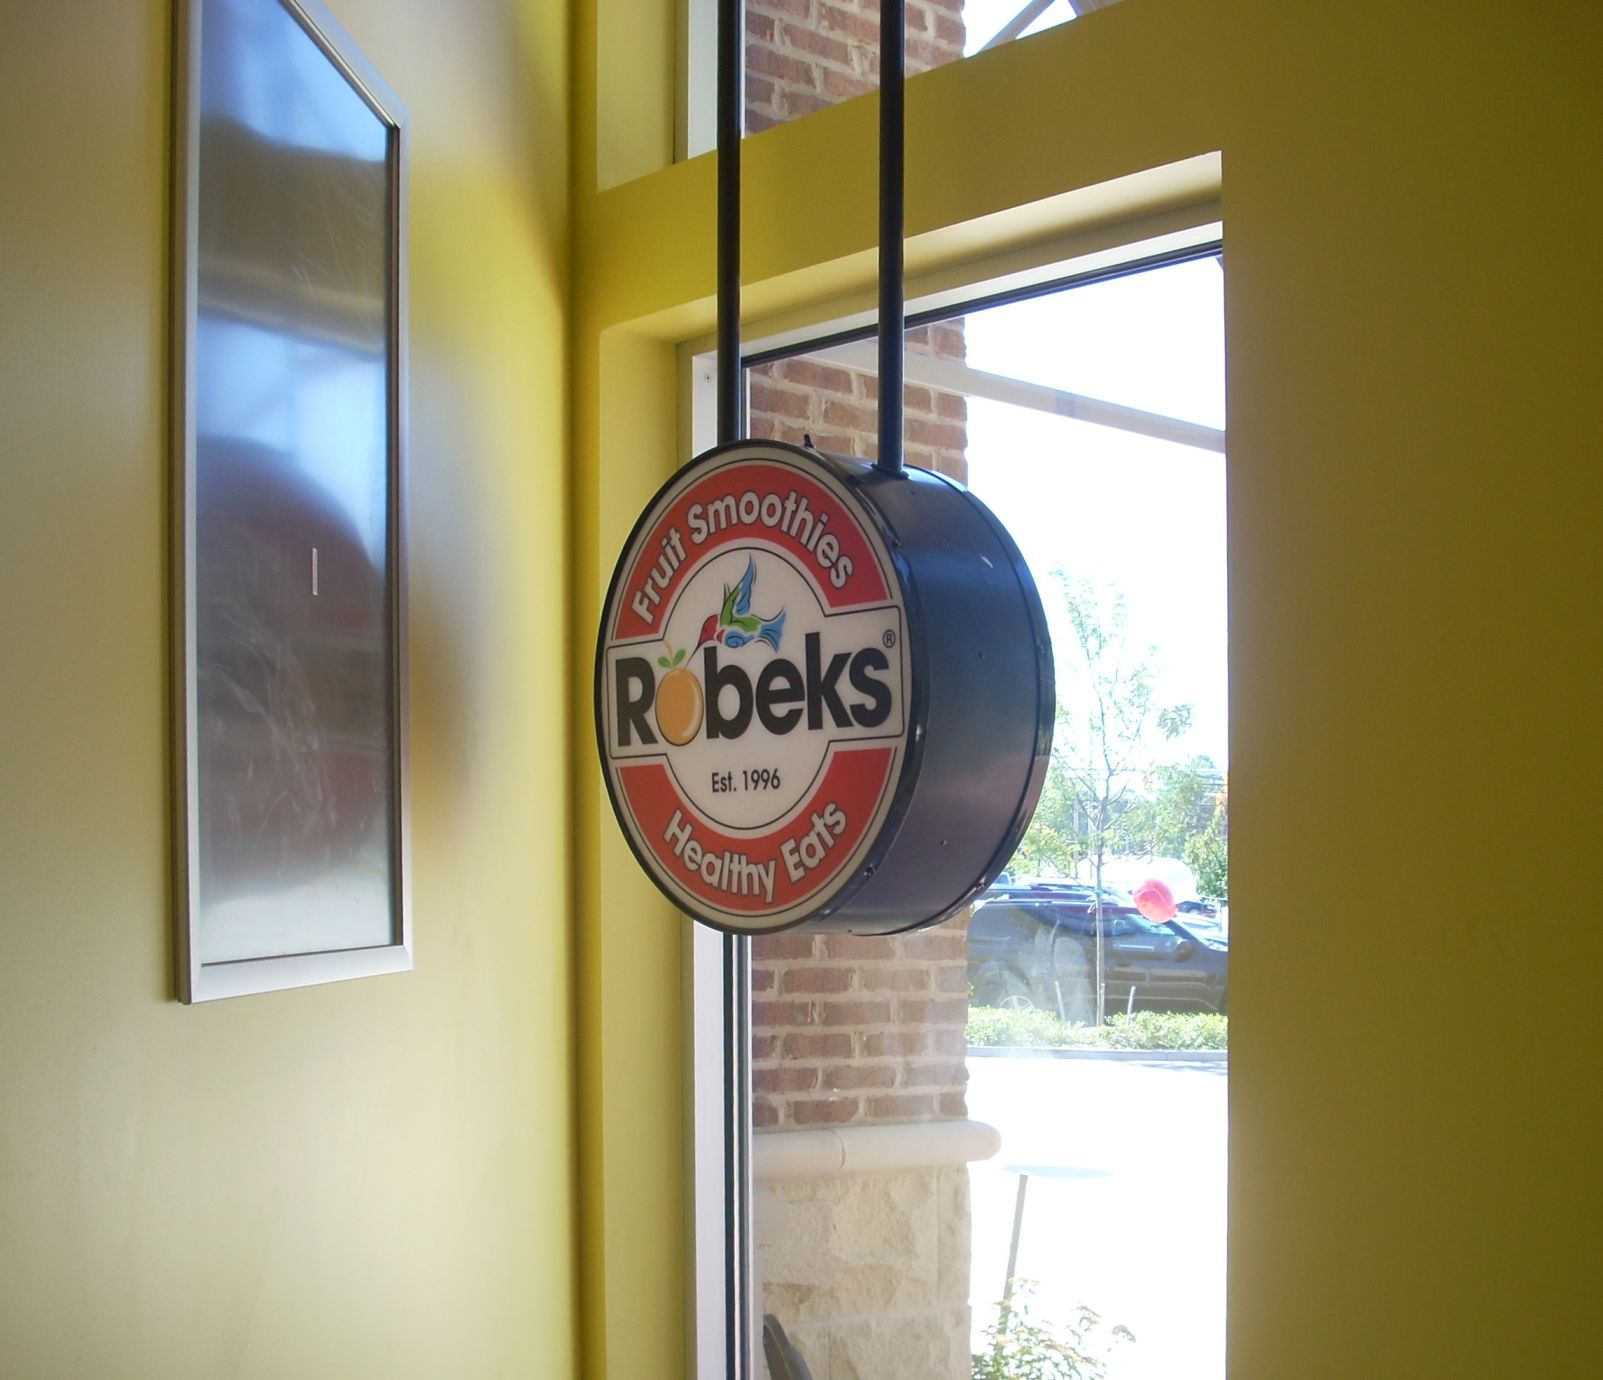 Robeks window sign